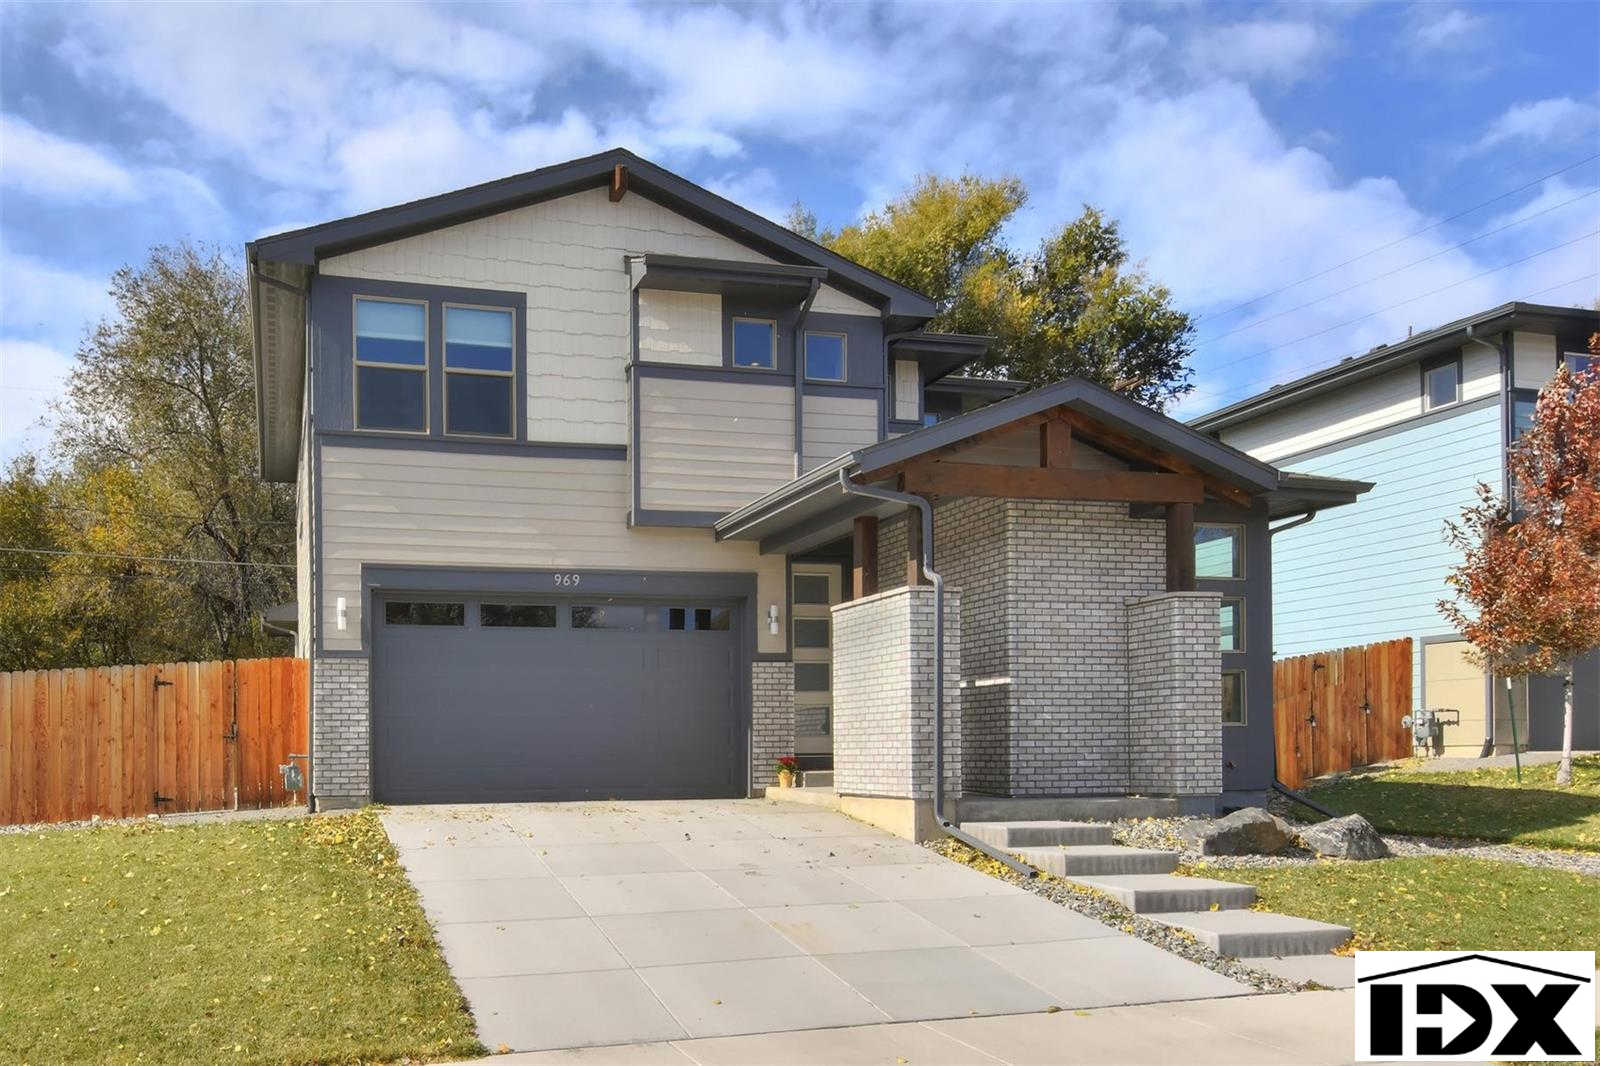 969 Eaton Street, Lakewood, CO 80214 now has a new price of $700,000!